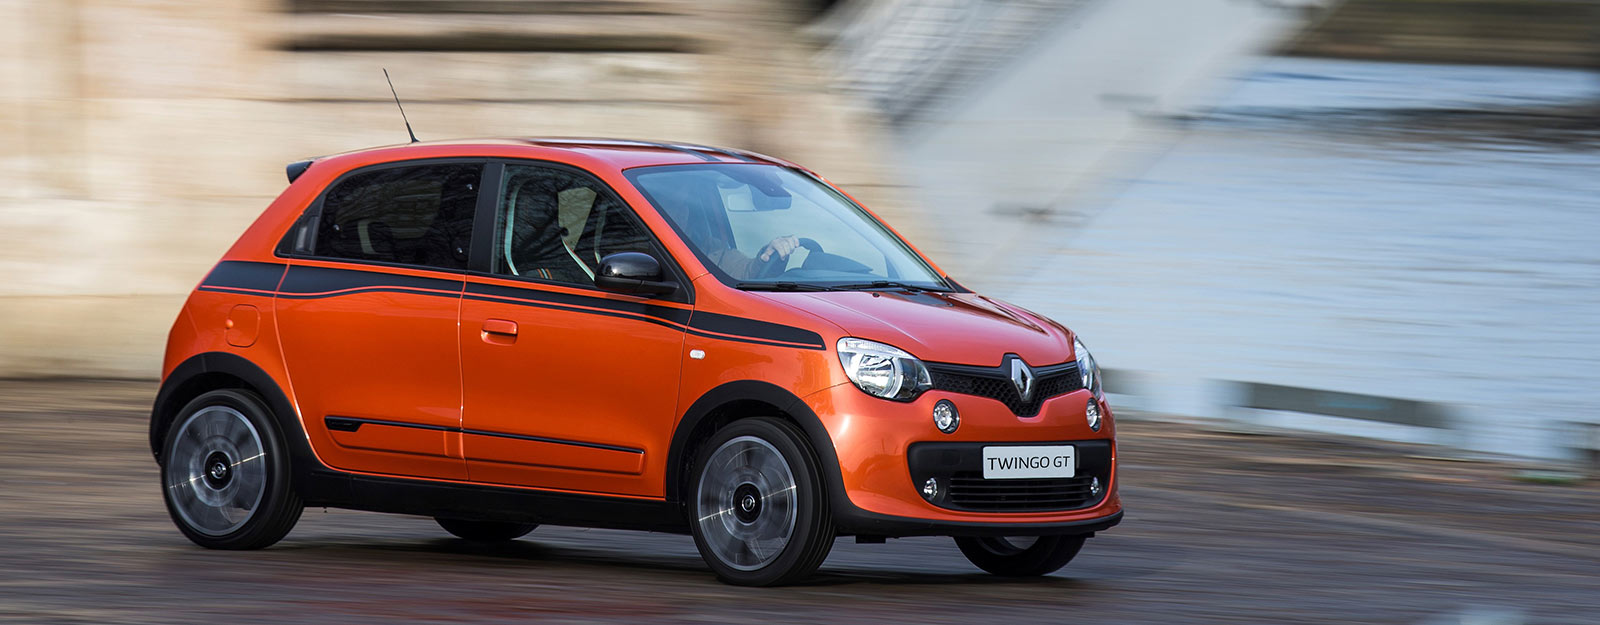 rs_model_twingo_gt_img_pc